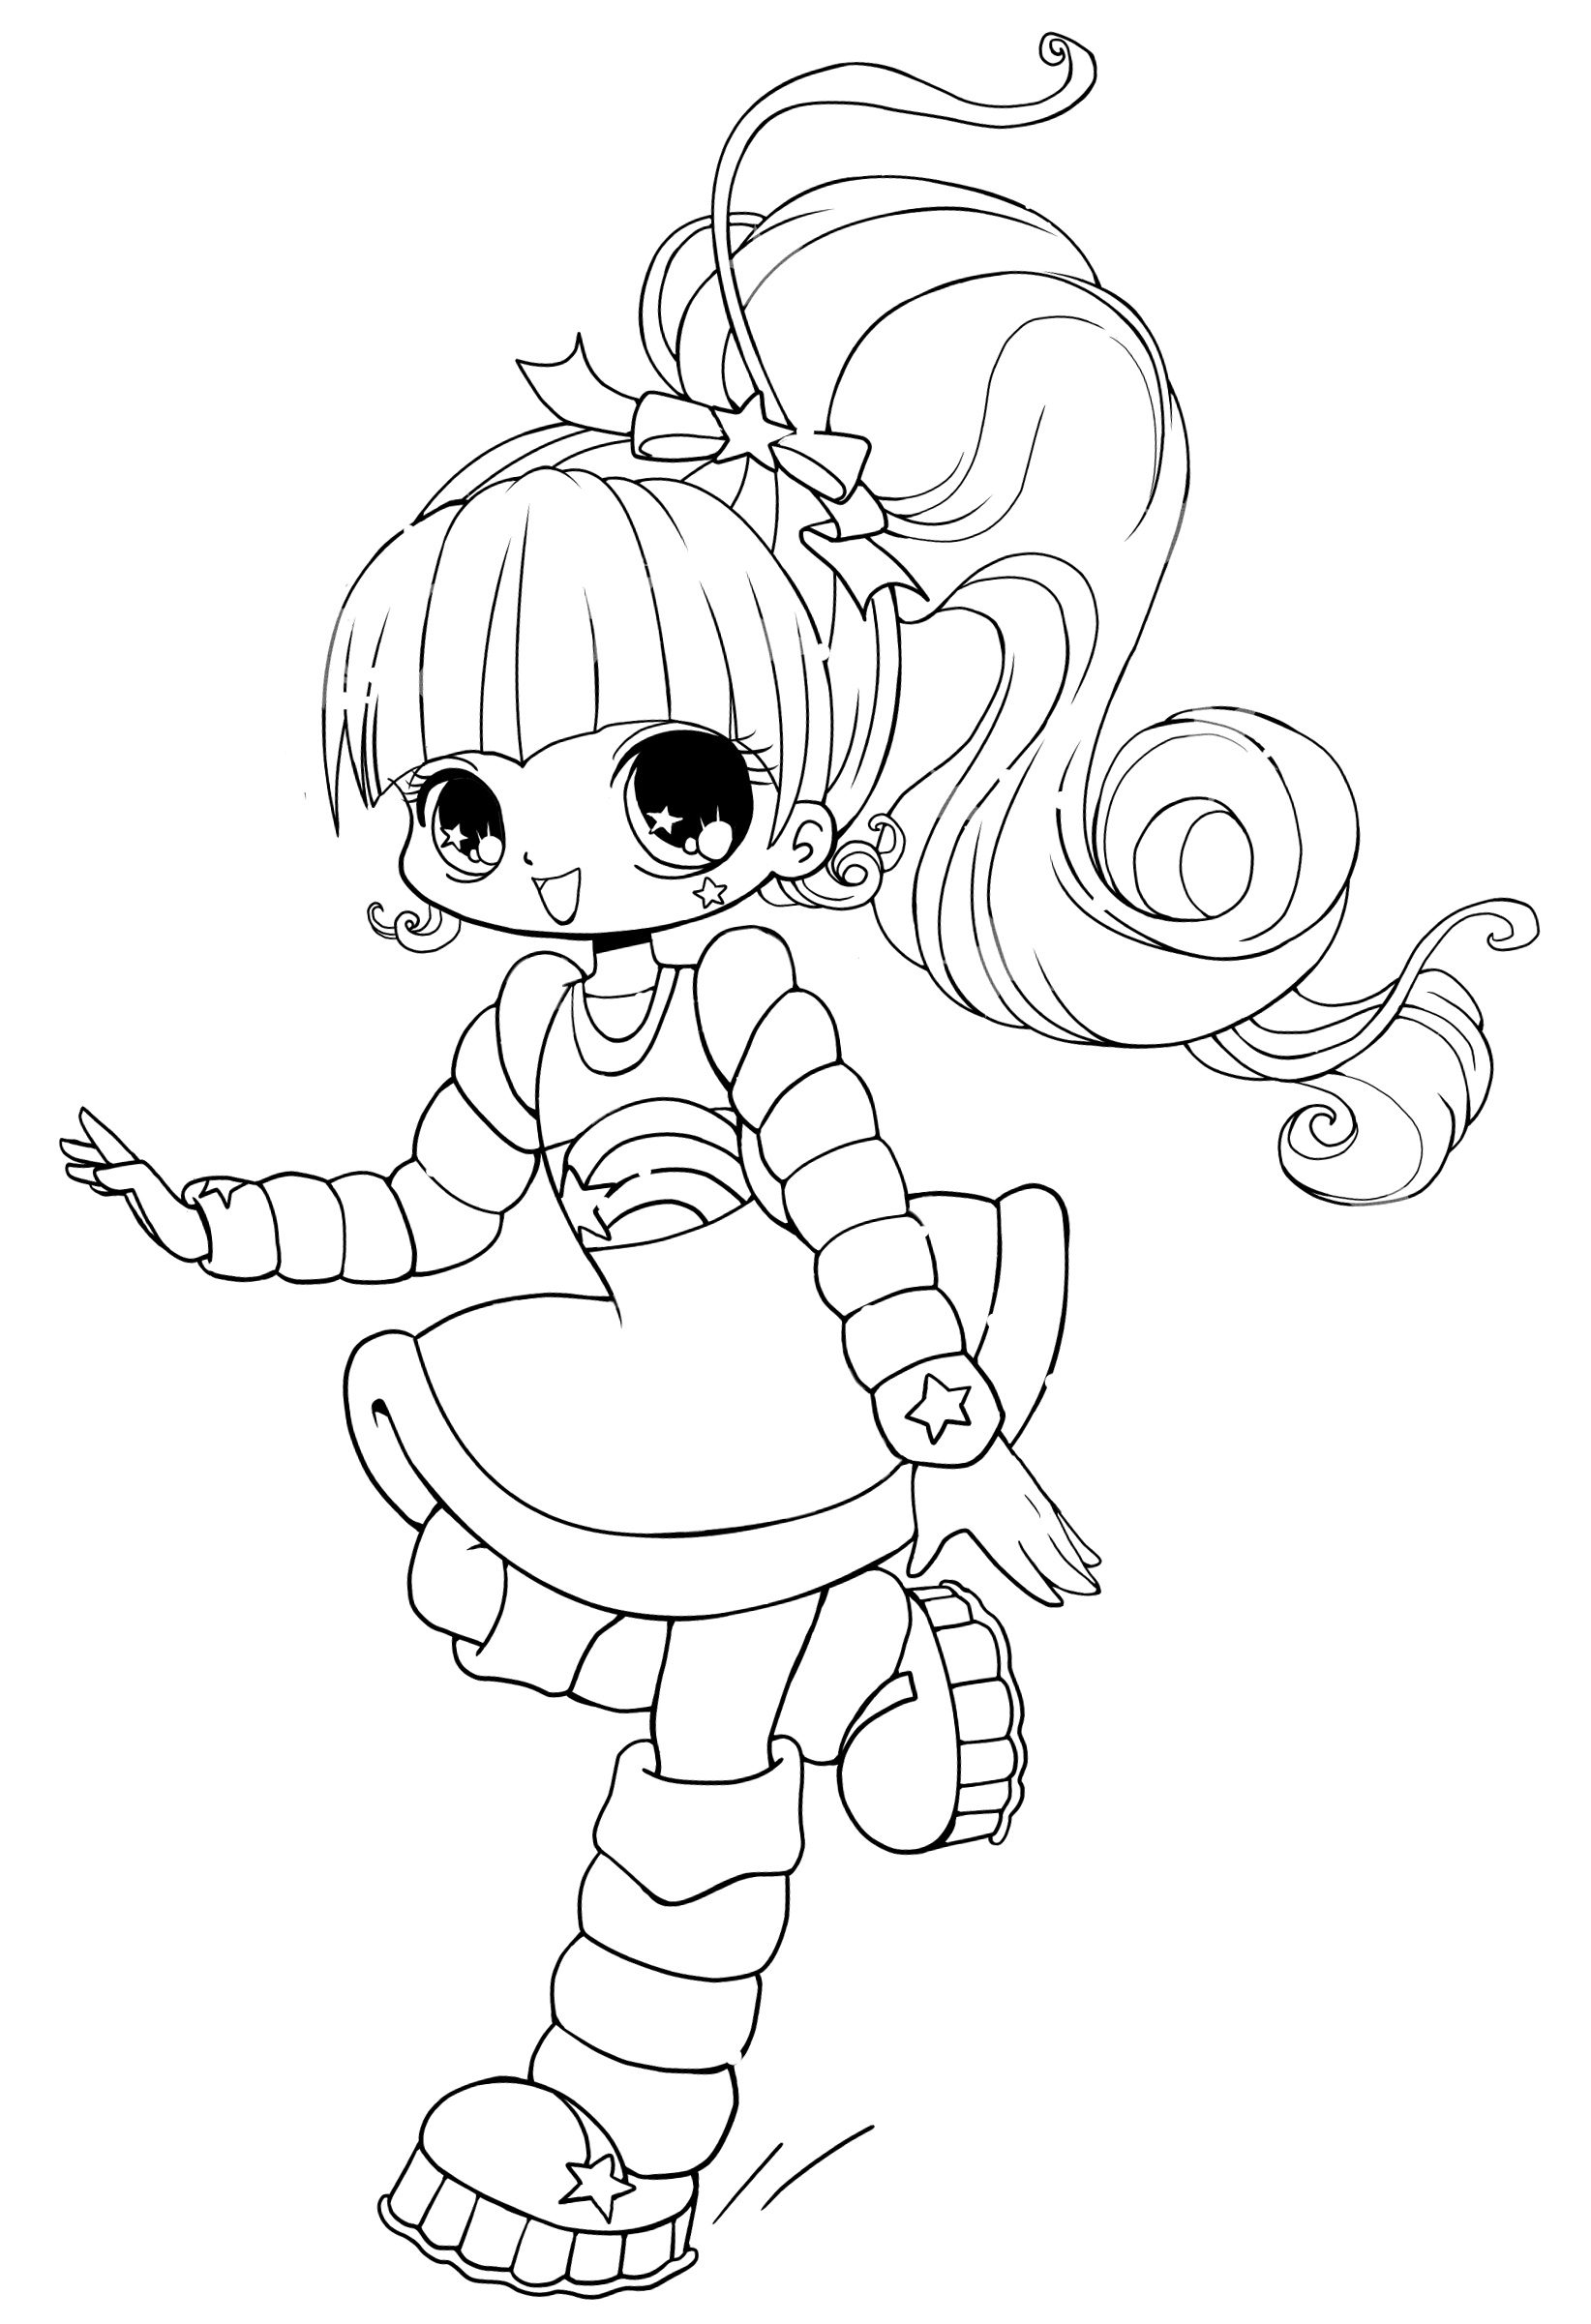 kawaii girls coloring pages 17 views chibi girl drawings cute easy drawings kawaii girls pages kawaii coloring